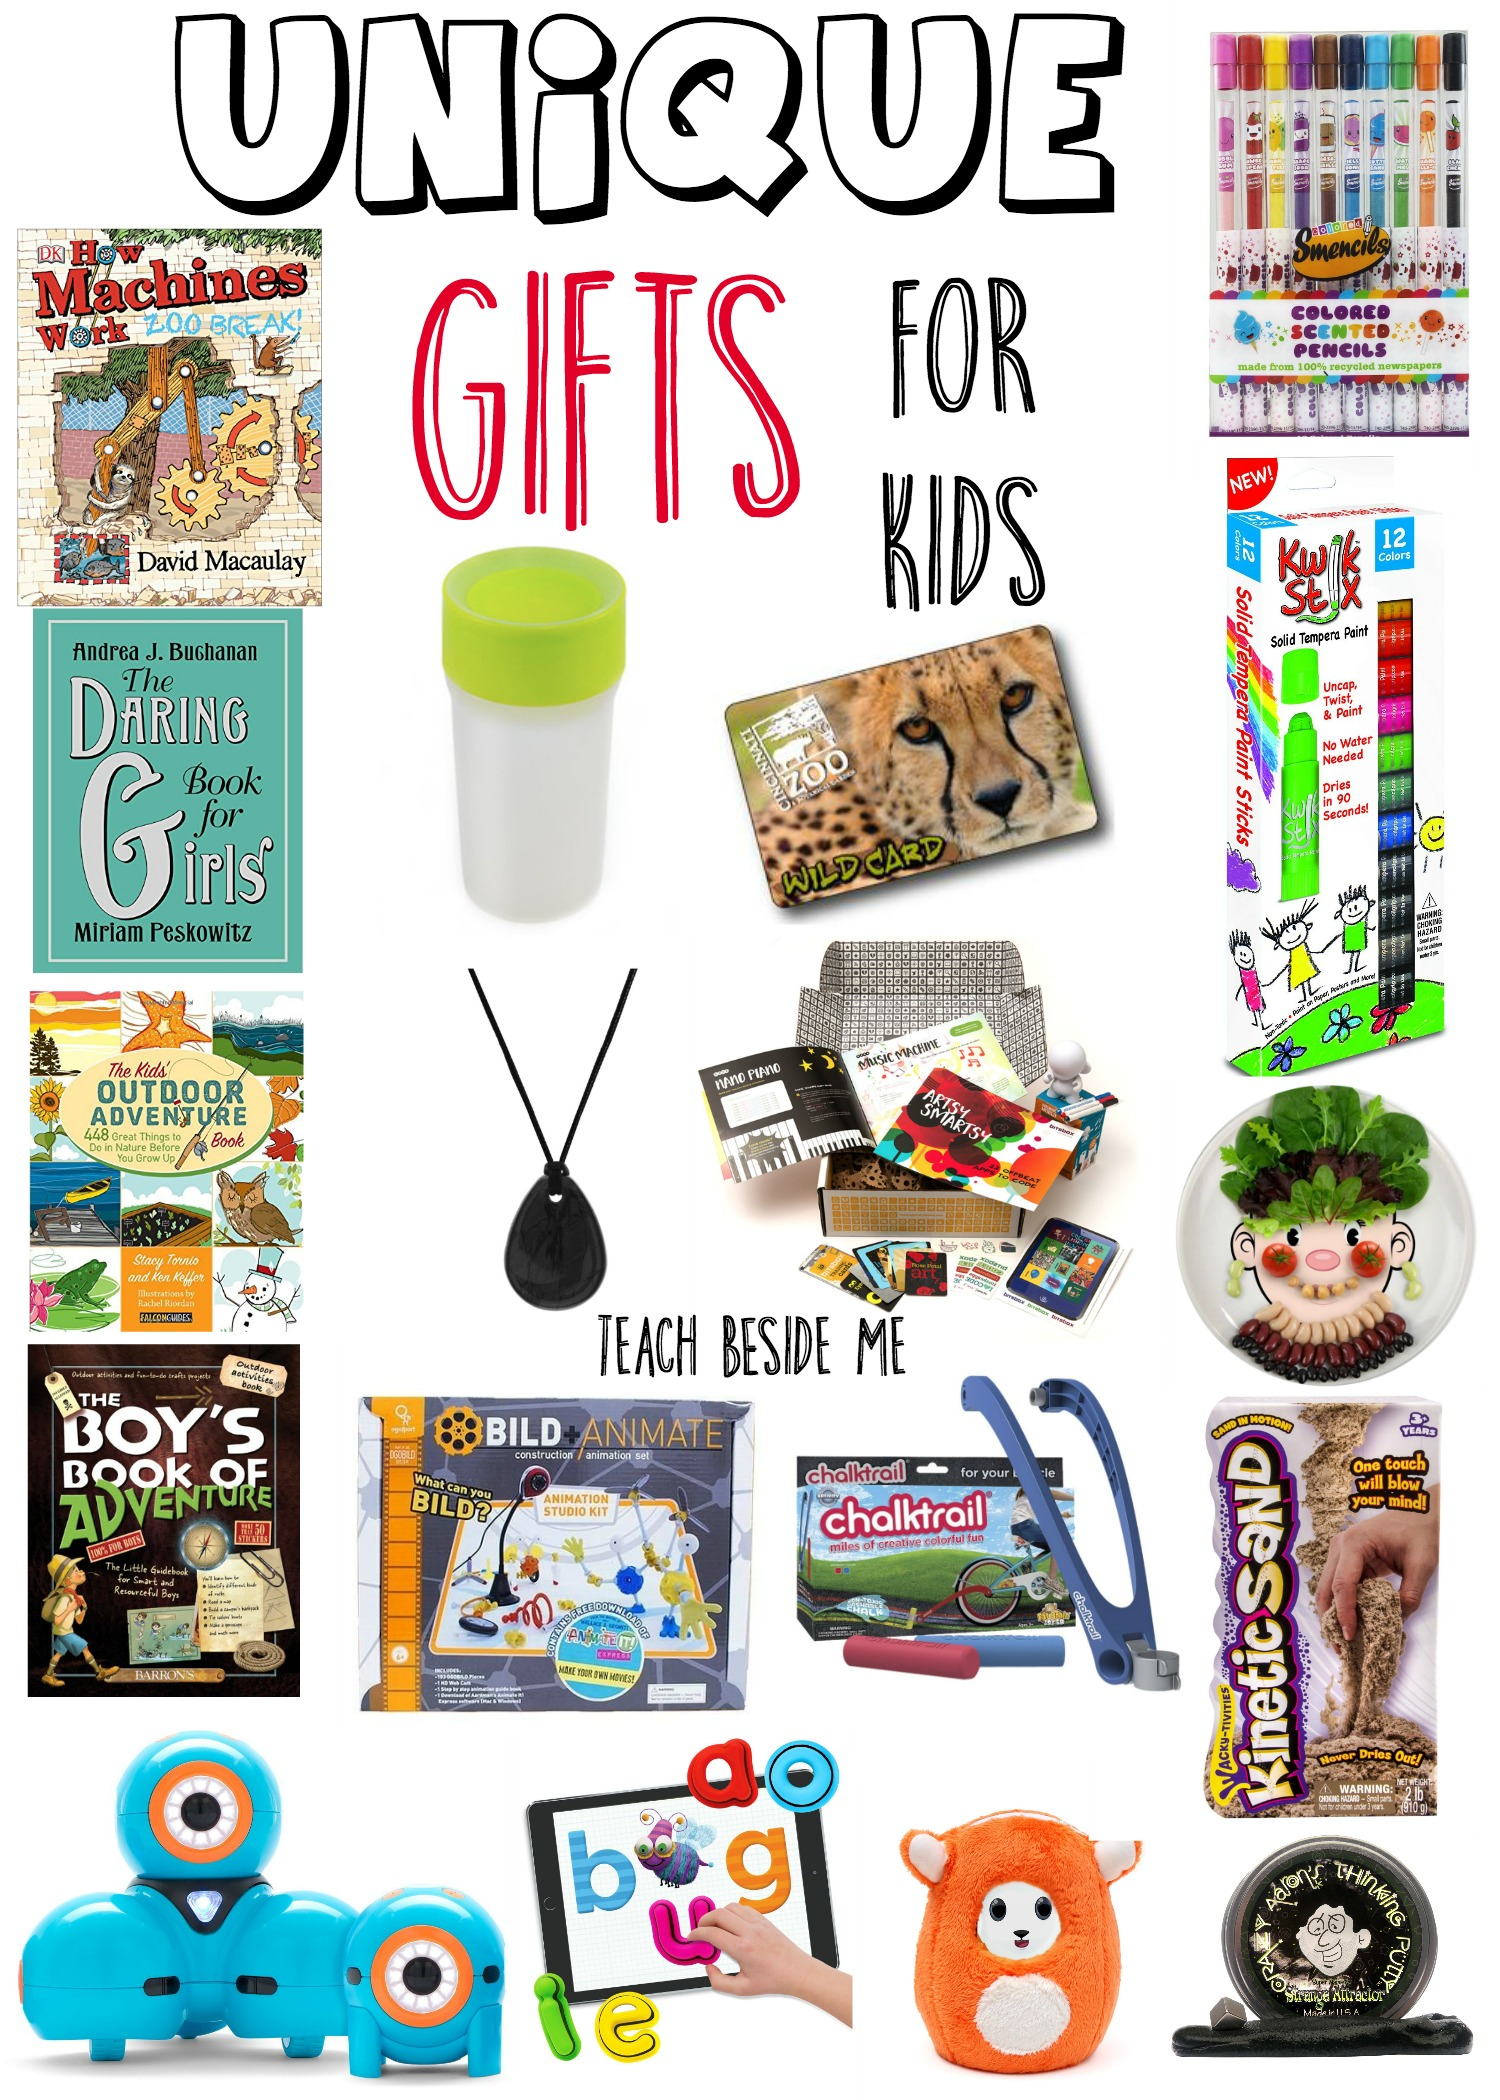 Unique Gifts for Kids With an Awesome Giveaway Teach Beside Me